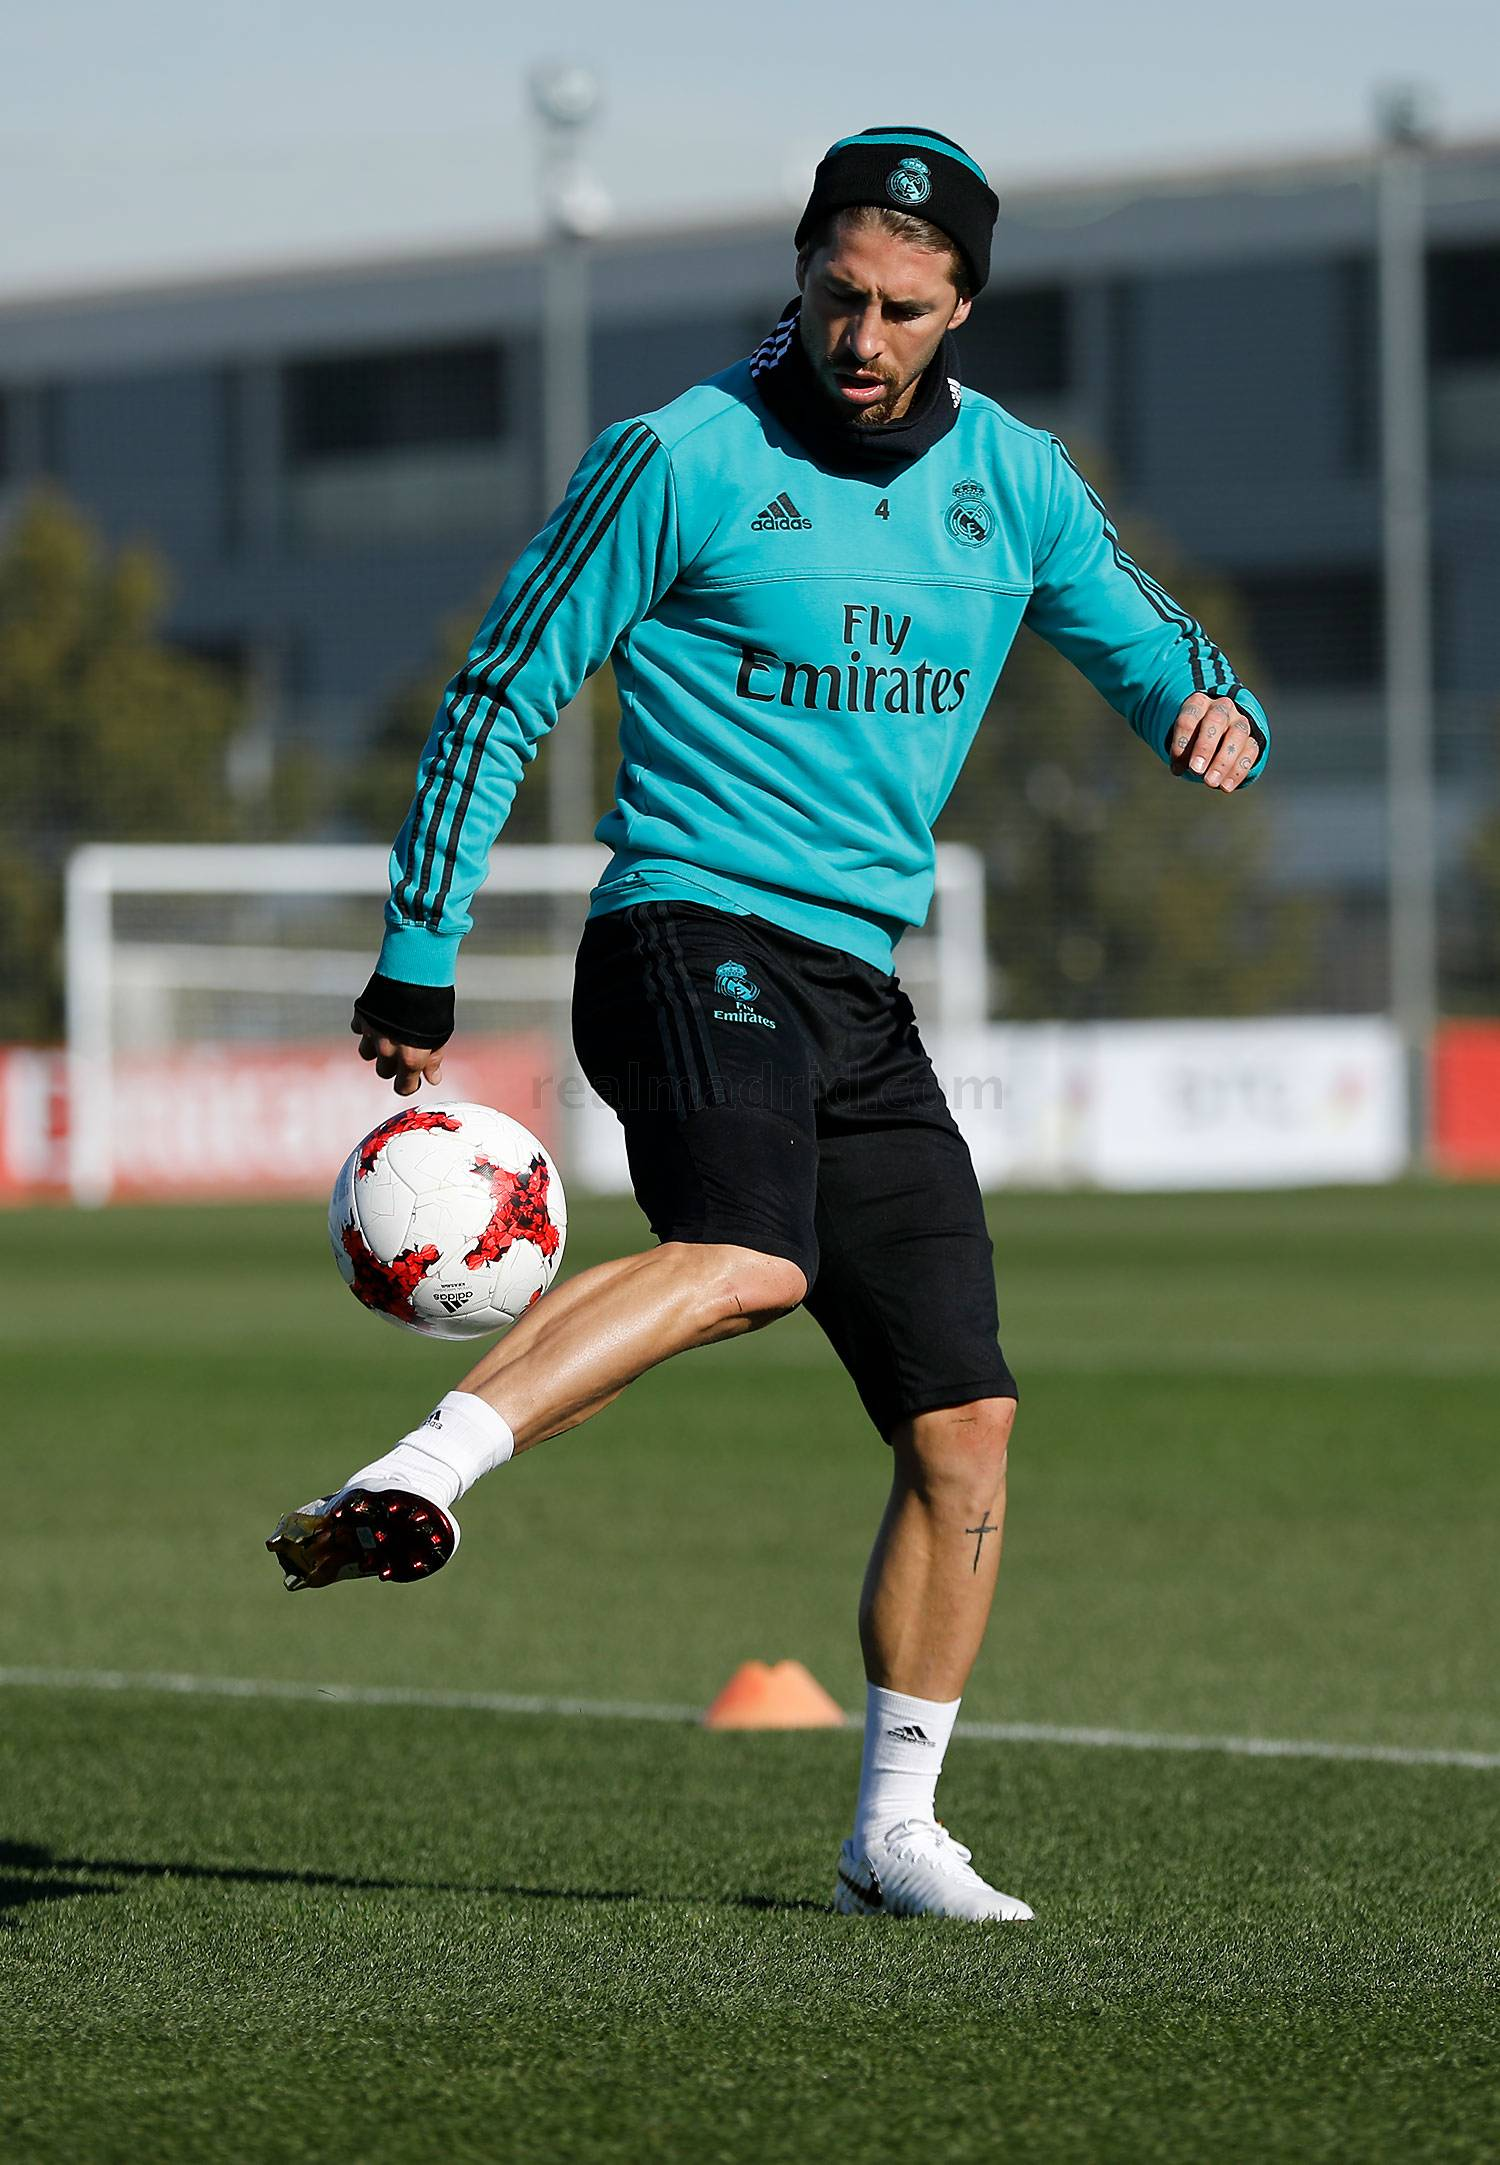 Real Madrid - Entrenamiento del Real Madrid - 15-01-2018